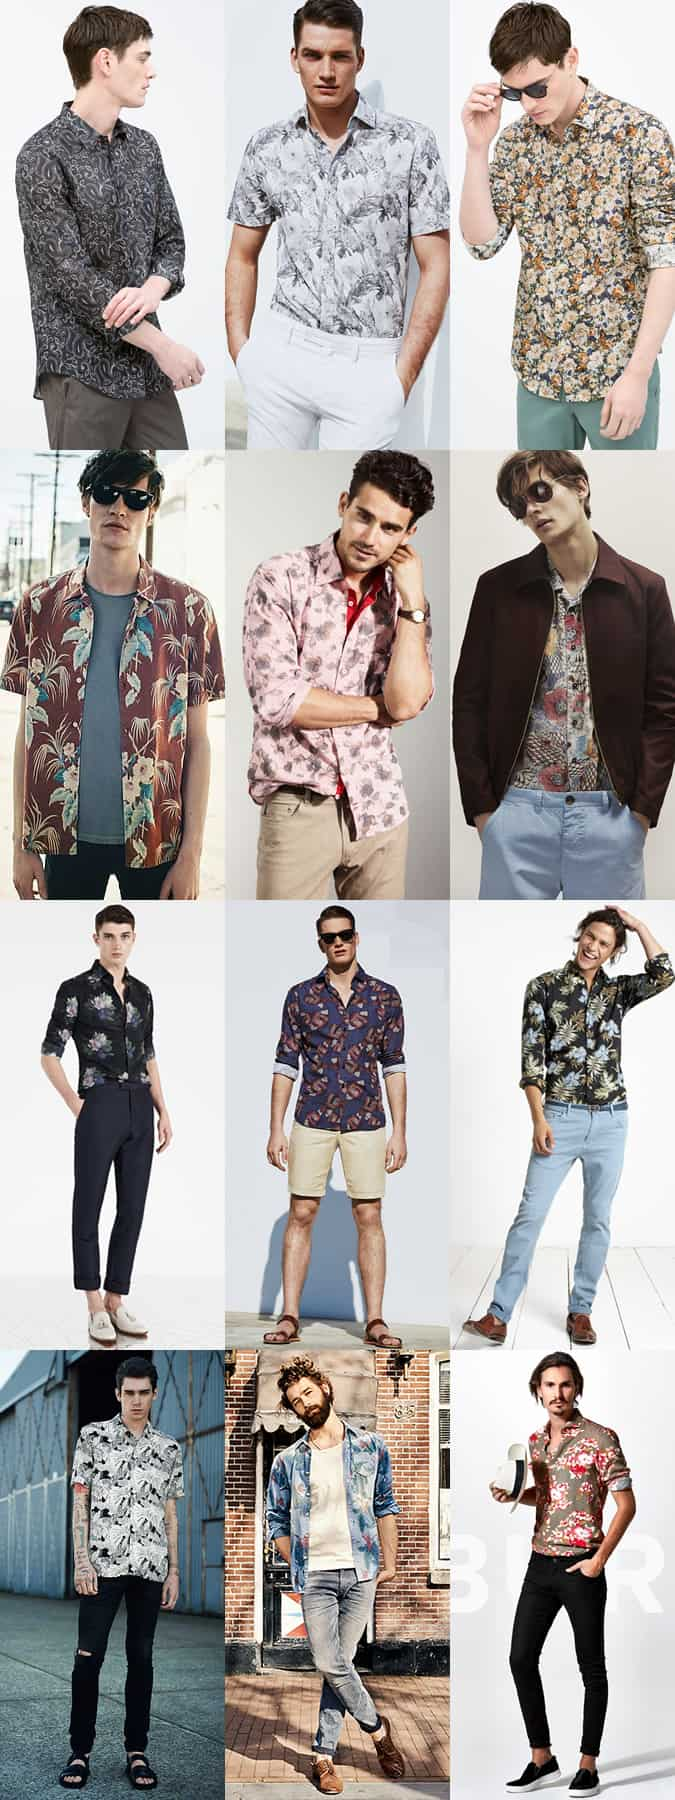 Men's Floral & Paisley Print Shirts Outfit Inspiration Lookbook